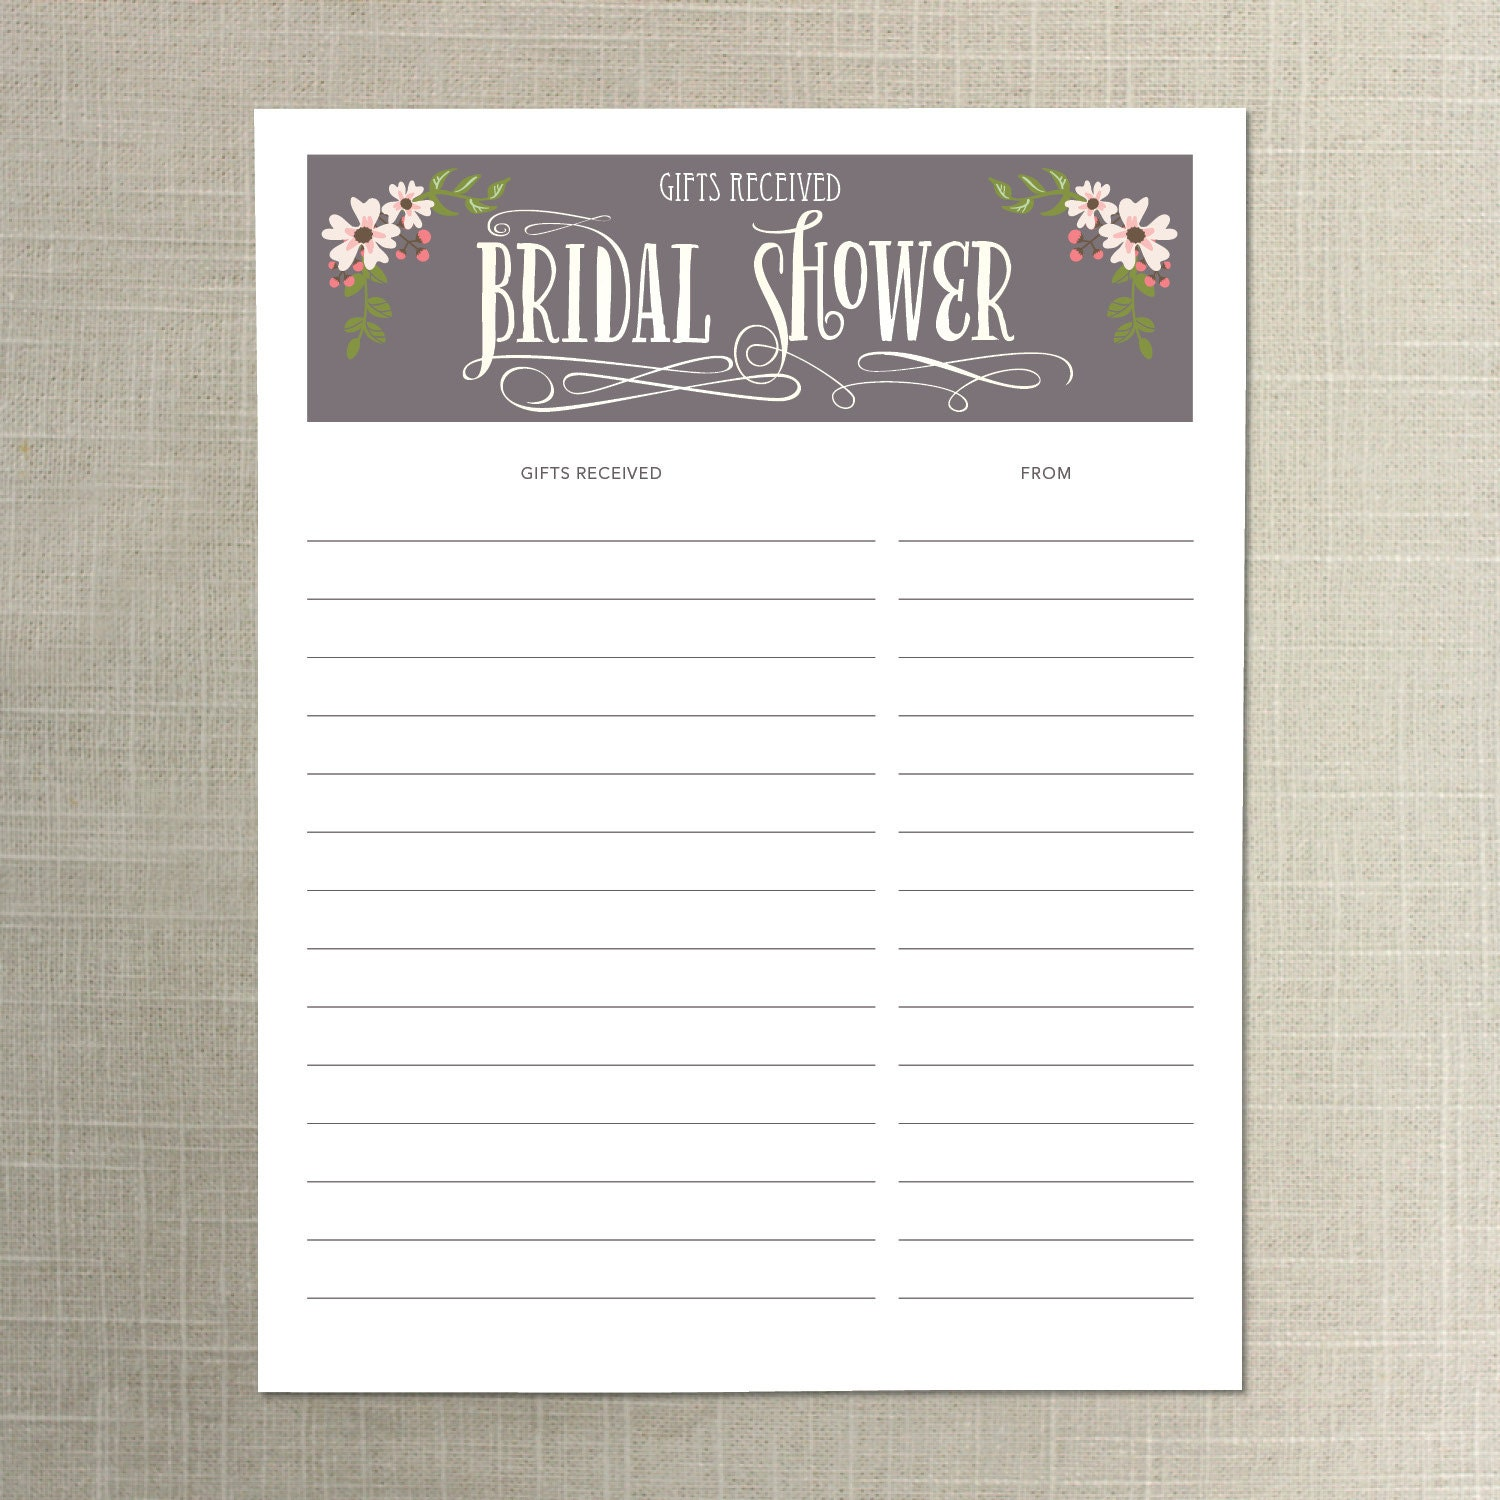 Wedding Gift Checklist : Instant Download Bridal Shower Gift List Gifts Received